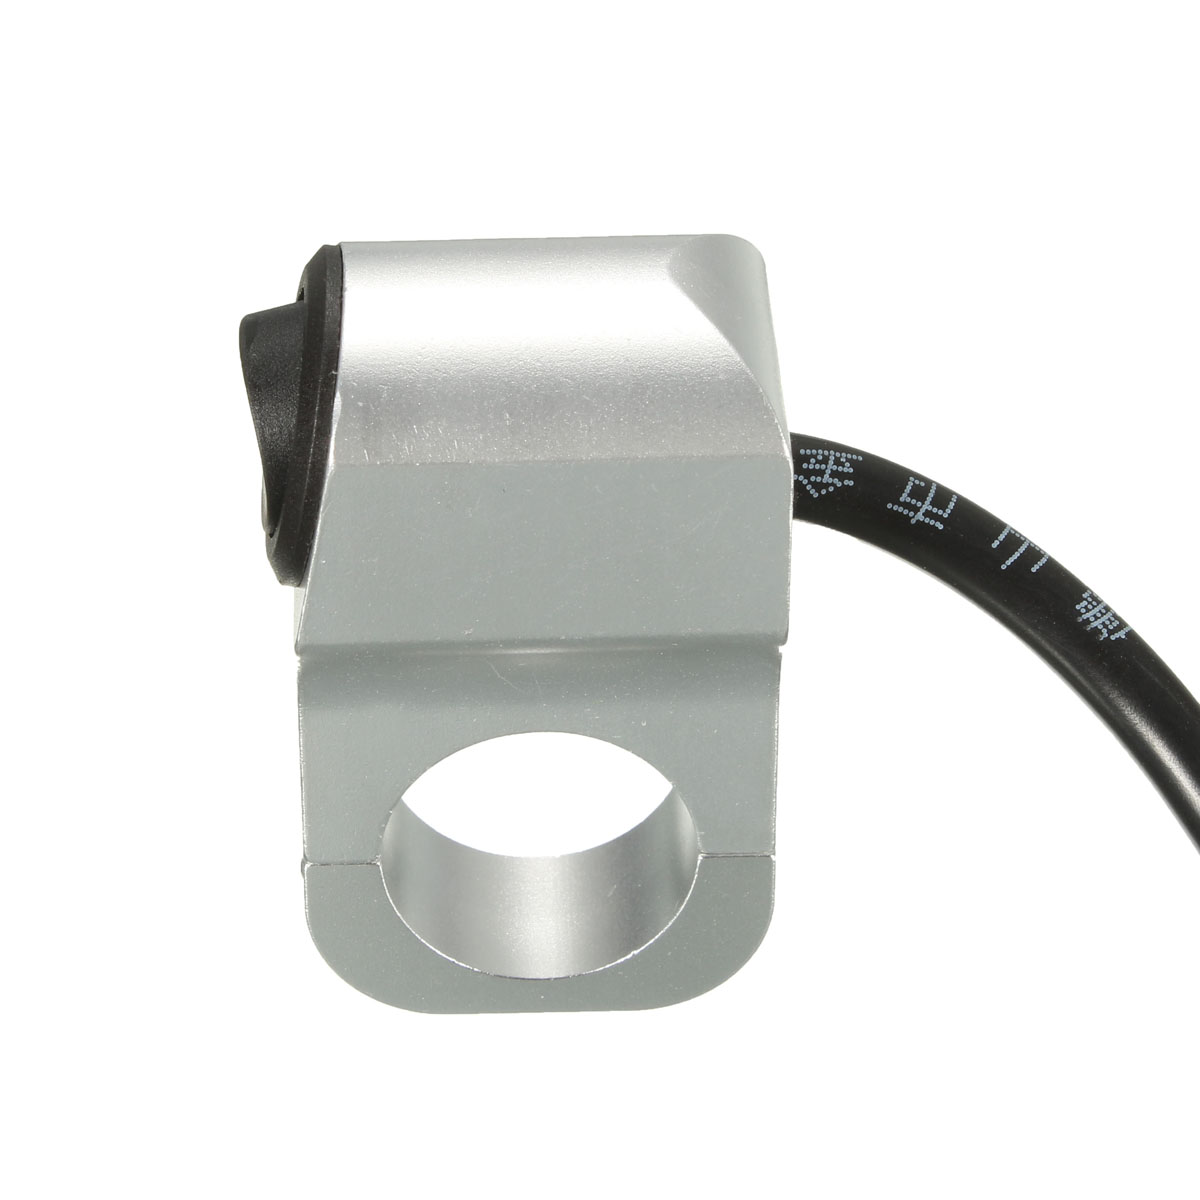 12V 10A Motorcycle CNC Handlebar Headlight On Off Switch Without Pilot Lamp